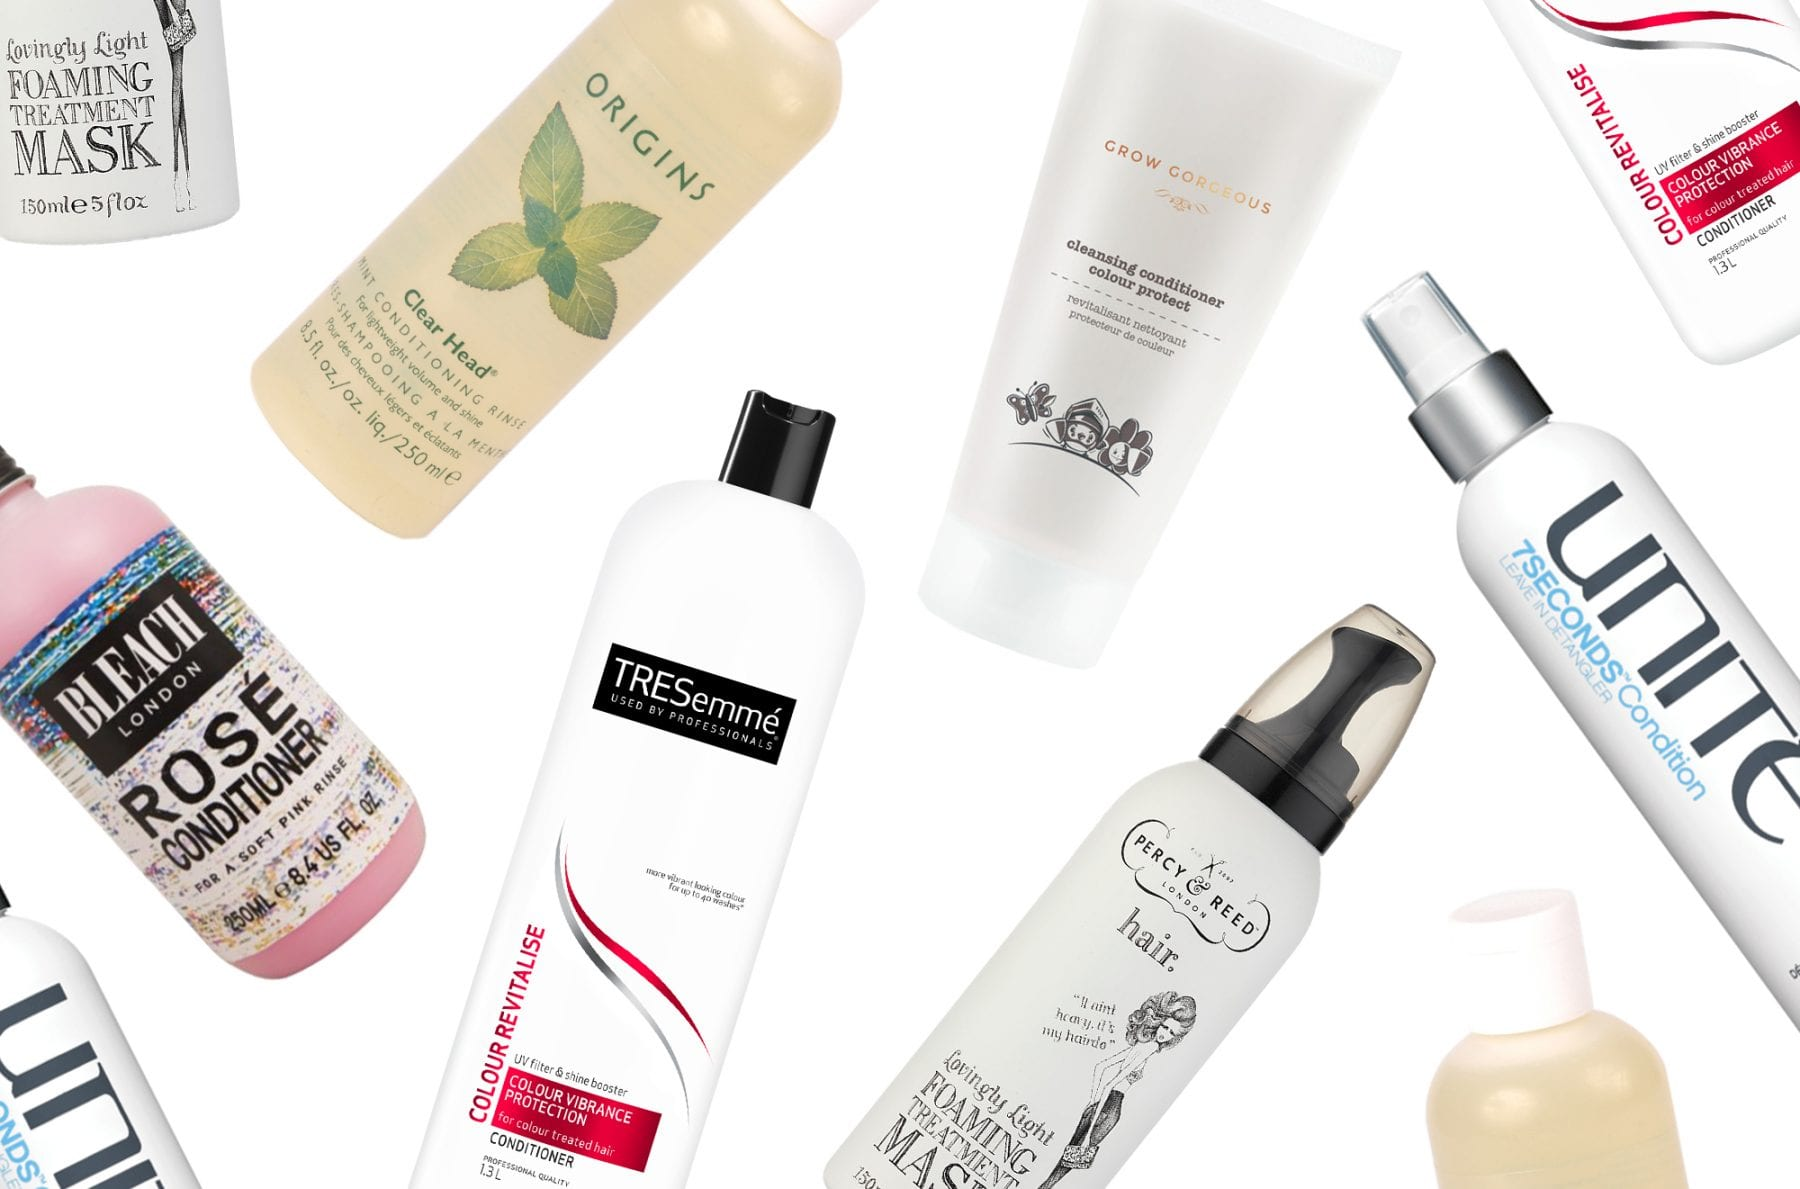 10 Of The Best Conditioners